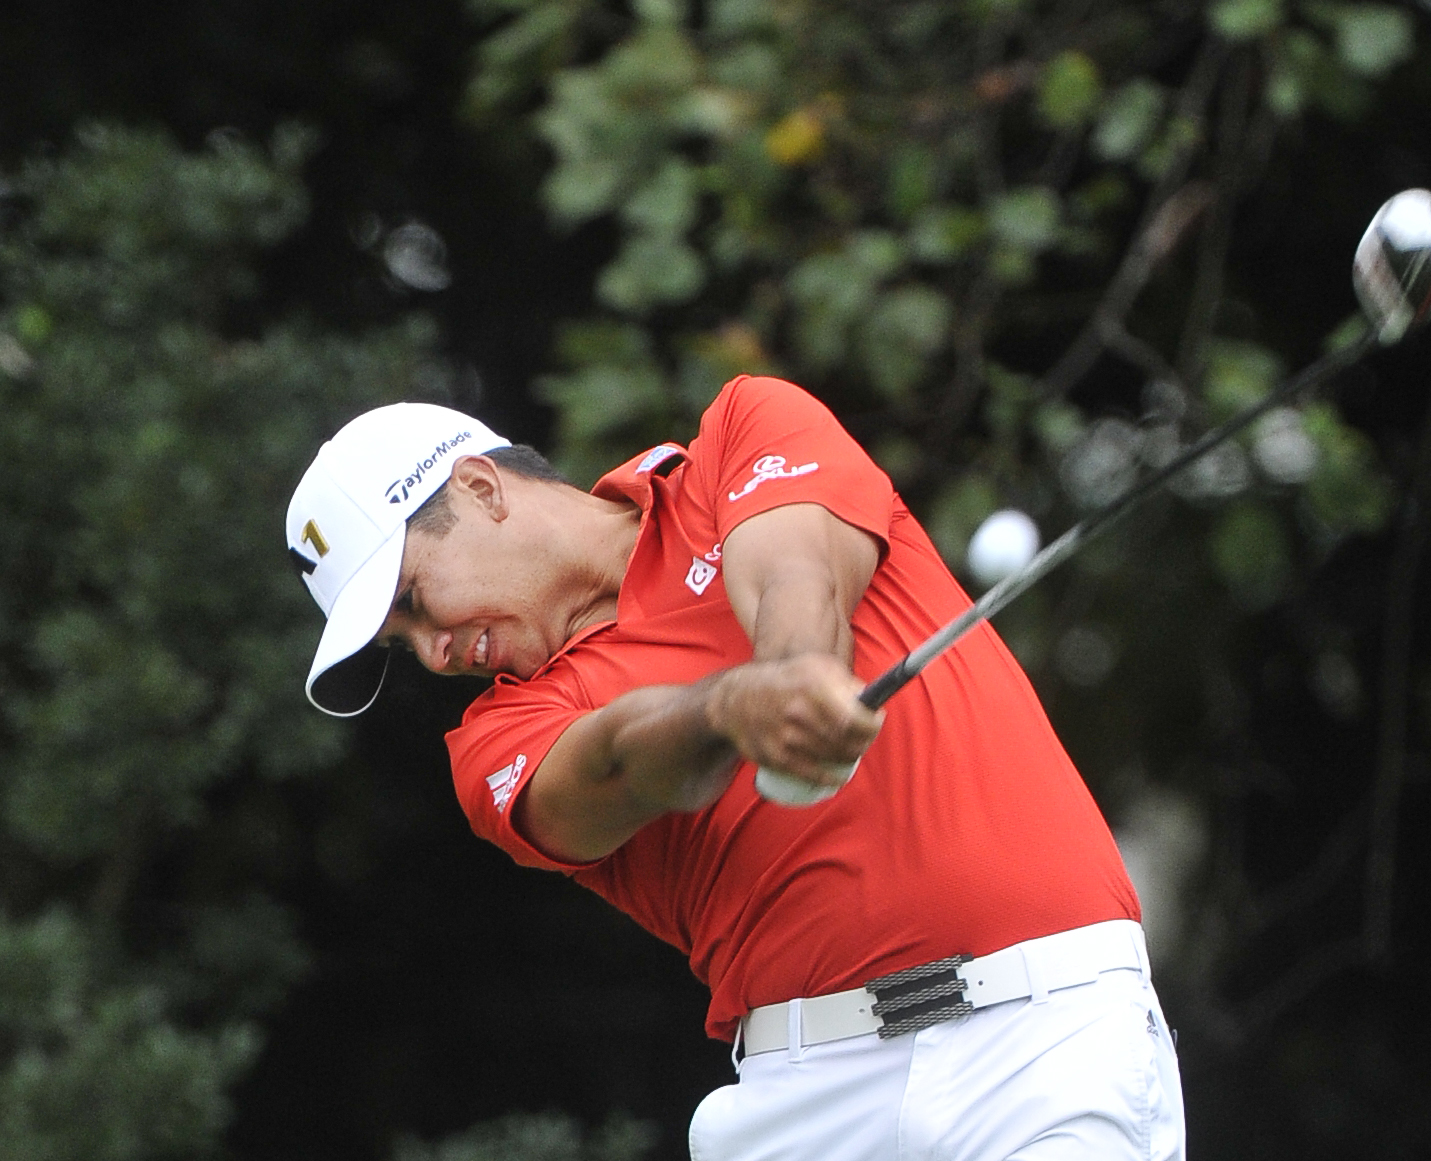 Jason Day hits from the tee on the eighth hole during the first round of the Tour Championship golf tournament at East Lake Club Thursday, Sept. 24, 2015, in Atlanta. (AP Photo/John Amis)